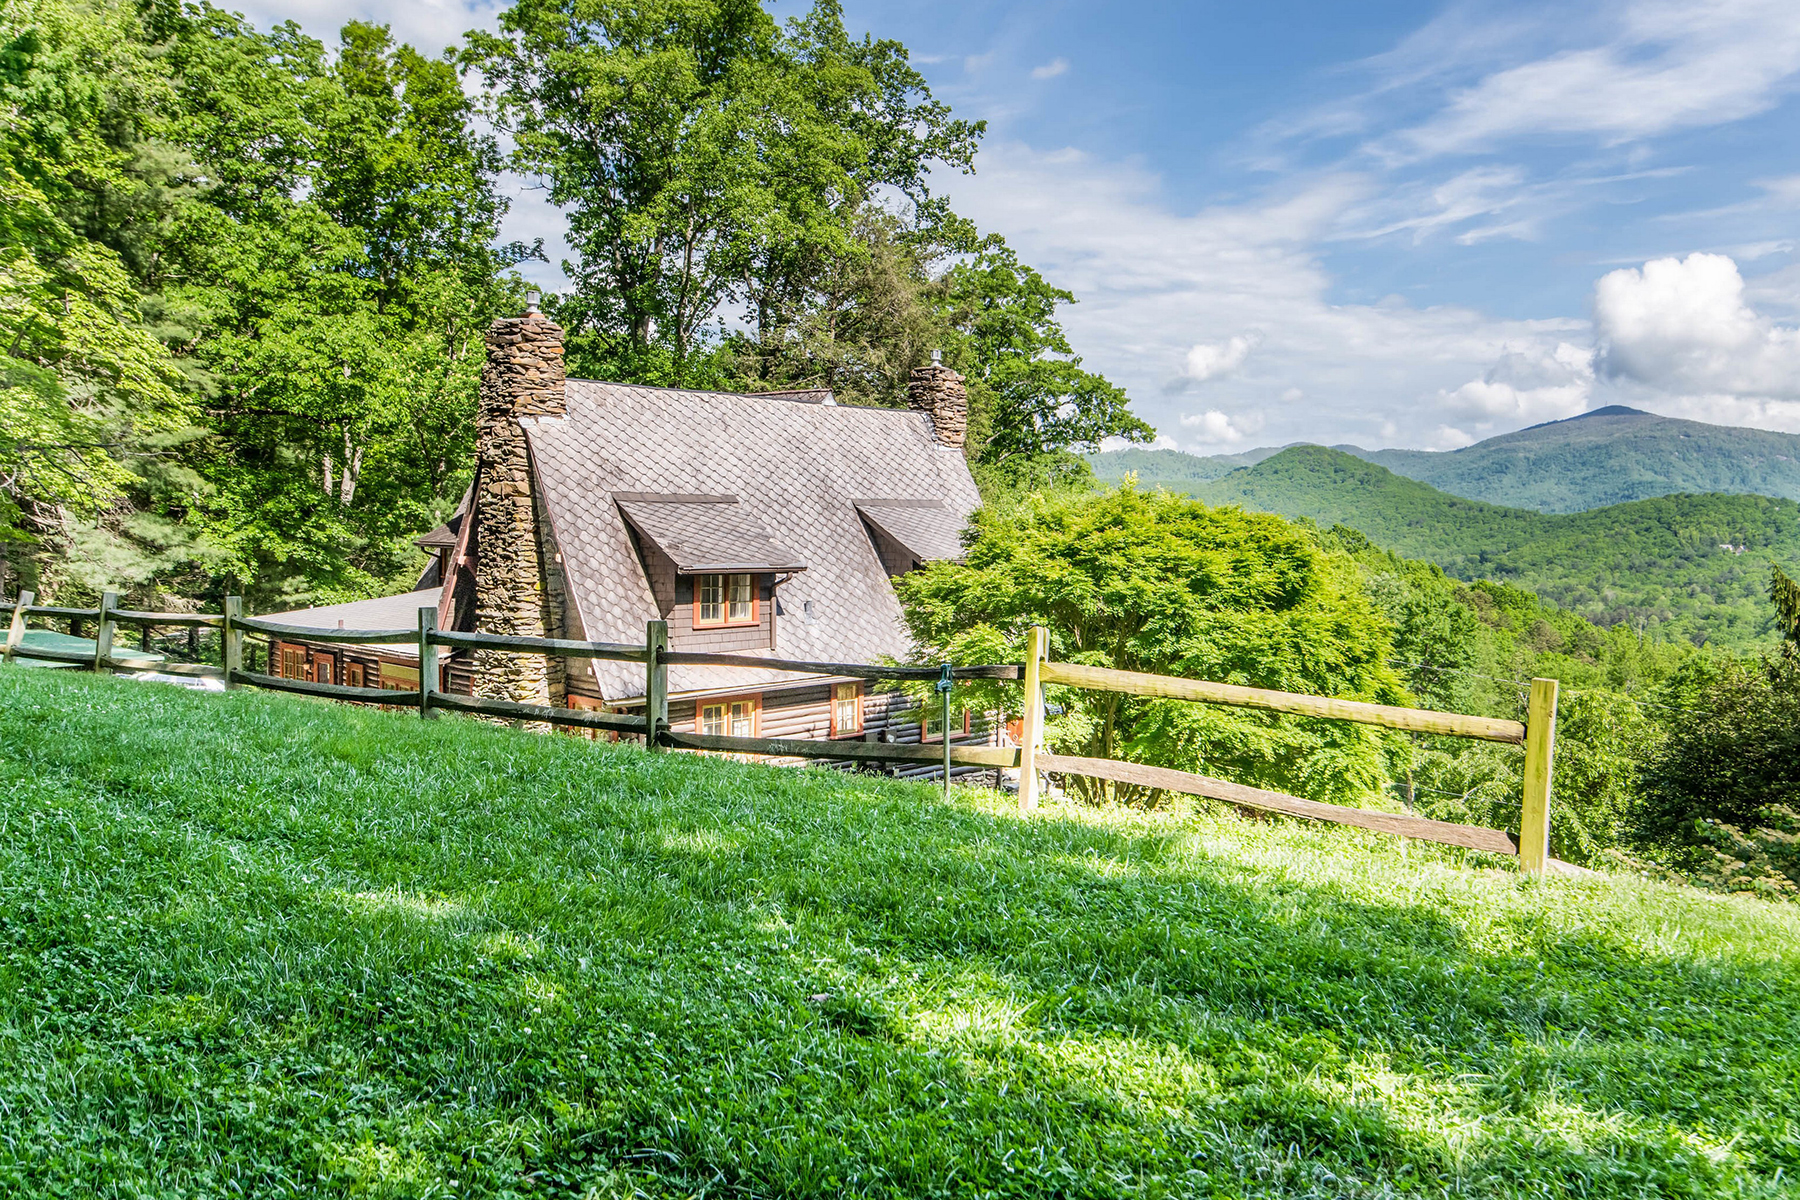 Single Family Homes for Active at FAIRVIEW 92 Flat Top Mountain Rd Fairview, North Carolina 28730 United States